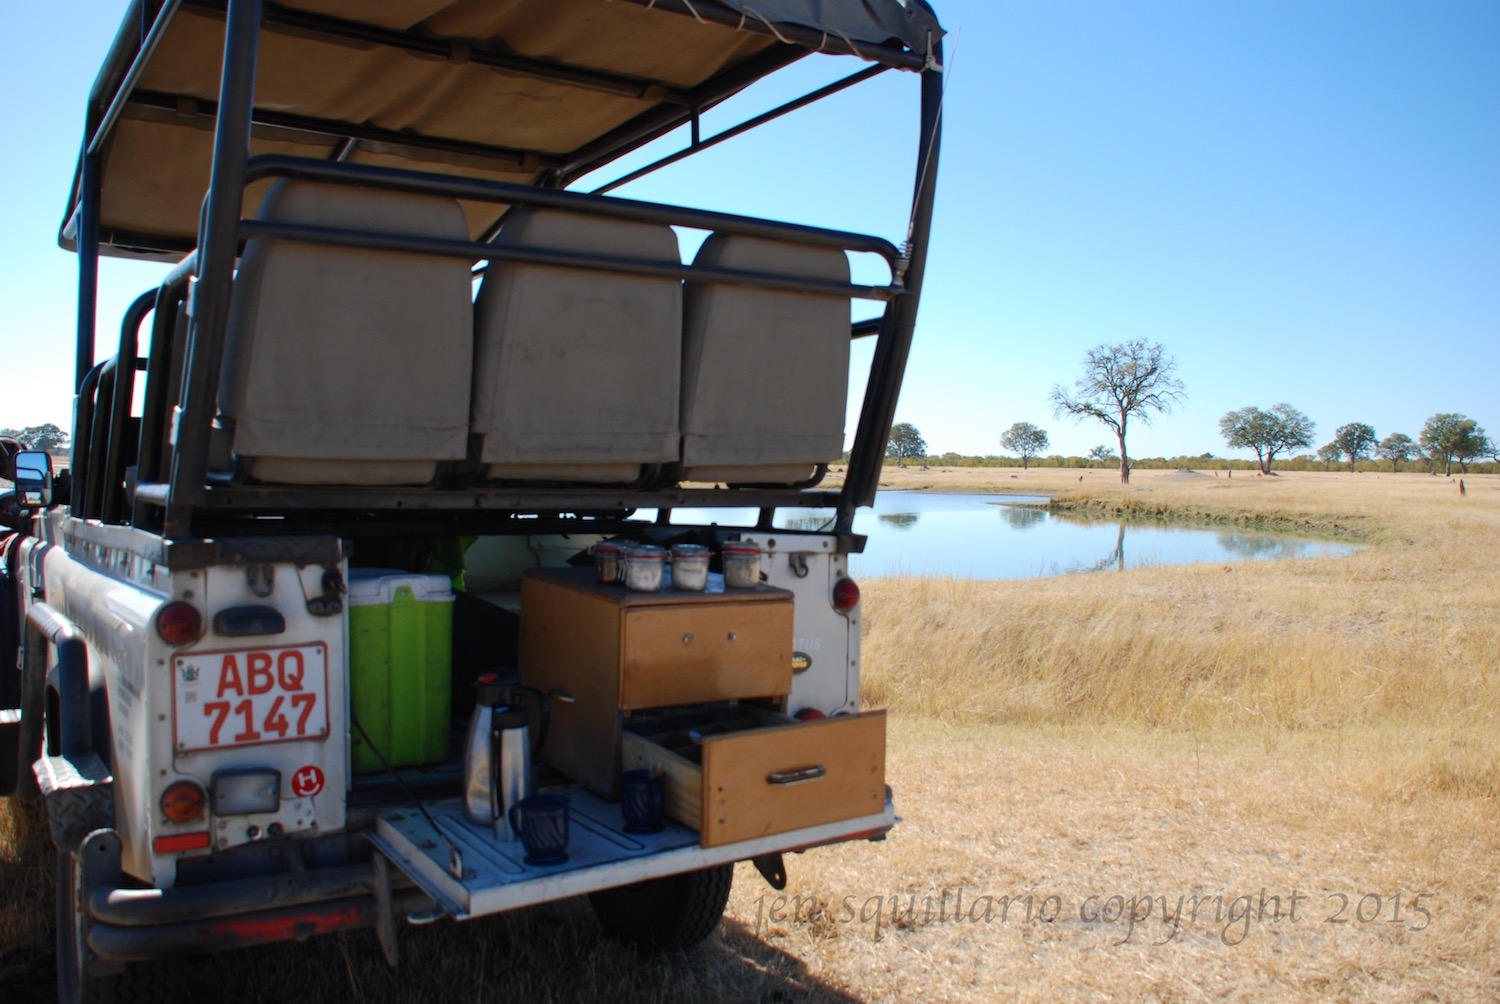 Our safari vehicle on our photographic safari in the Hwange National Park in Zimbabwe in June (winter in Zimbabwe).  The back of the vehicle is set up for morning coffee and tea.  See  www.wilderness-safaris.com  for more information.